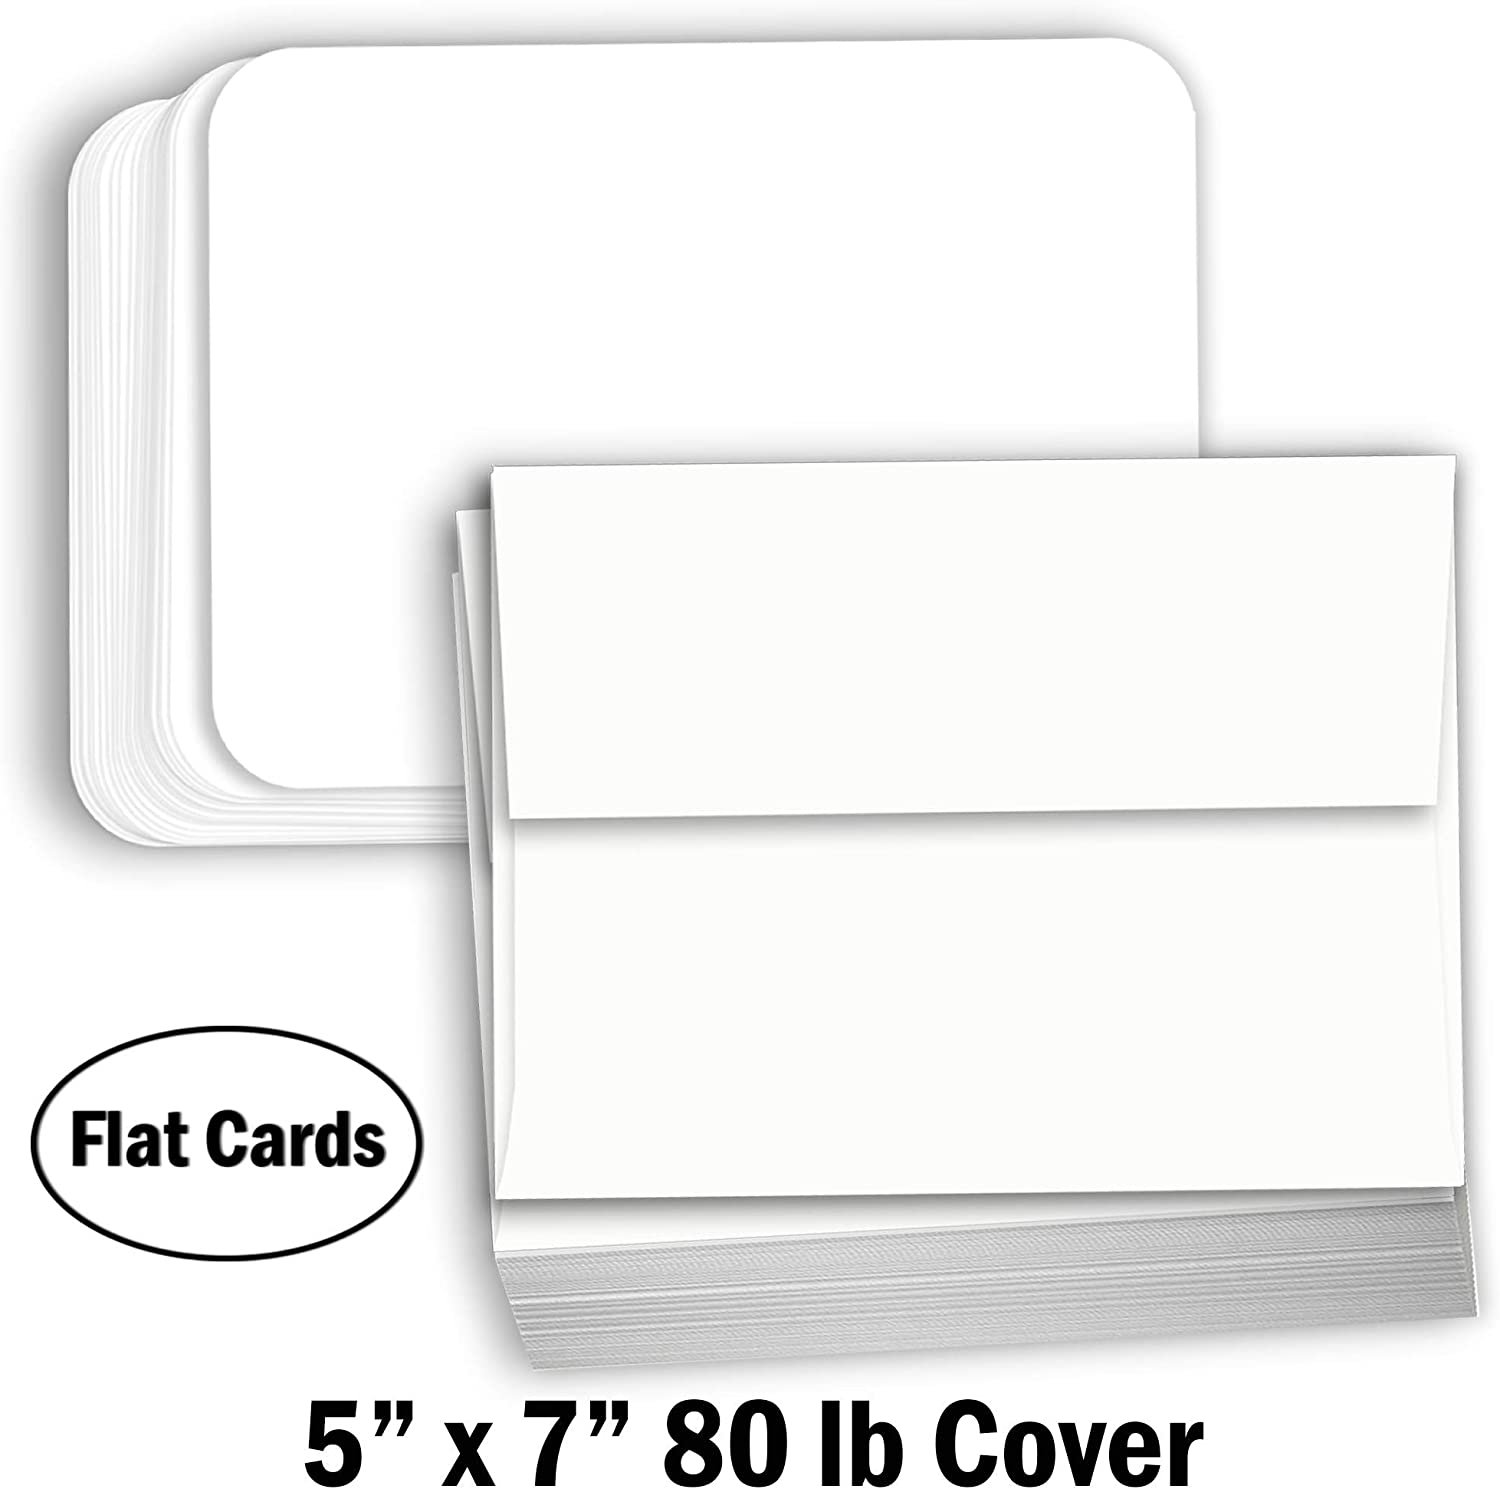 24 4 x 6 Chipboard Blank Cards Thick Cards Announcements Parties Greeting Cards Mail Invitations DIY Cards Heavyweight Black Postcards